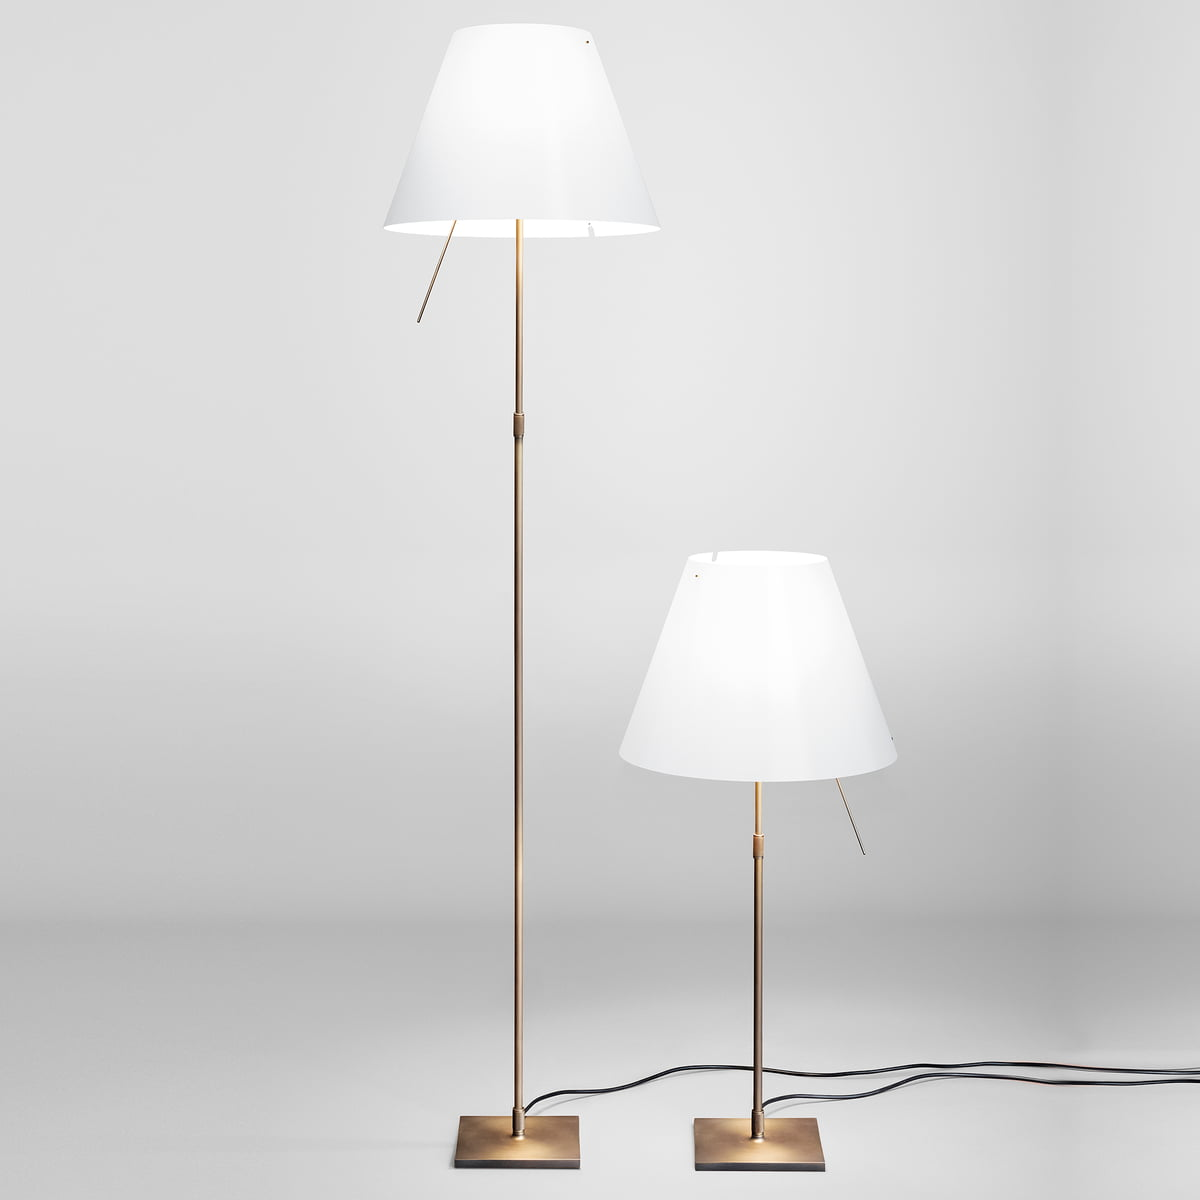 costanzina table lamp by luceplan. Black Bedroom Furniture Sets. Home Design Ideas